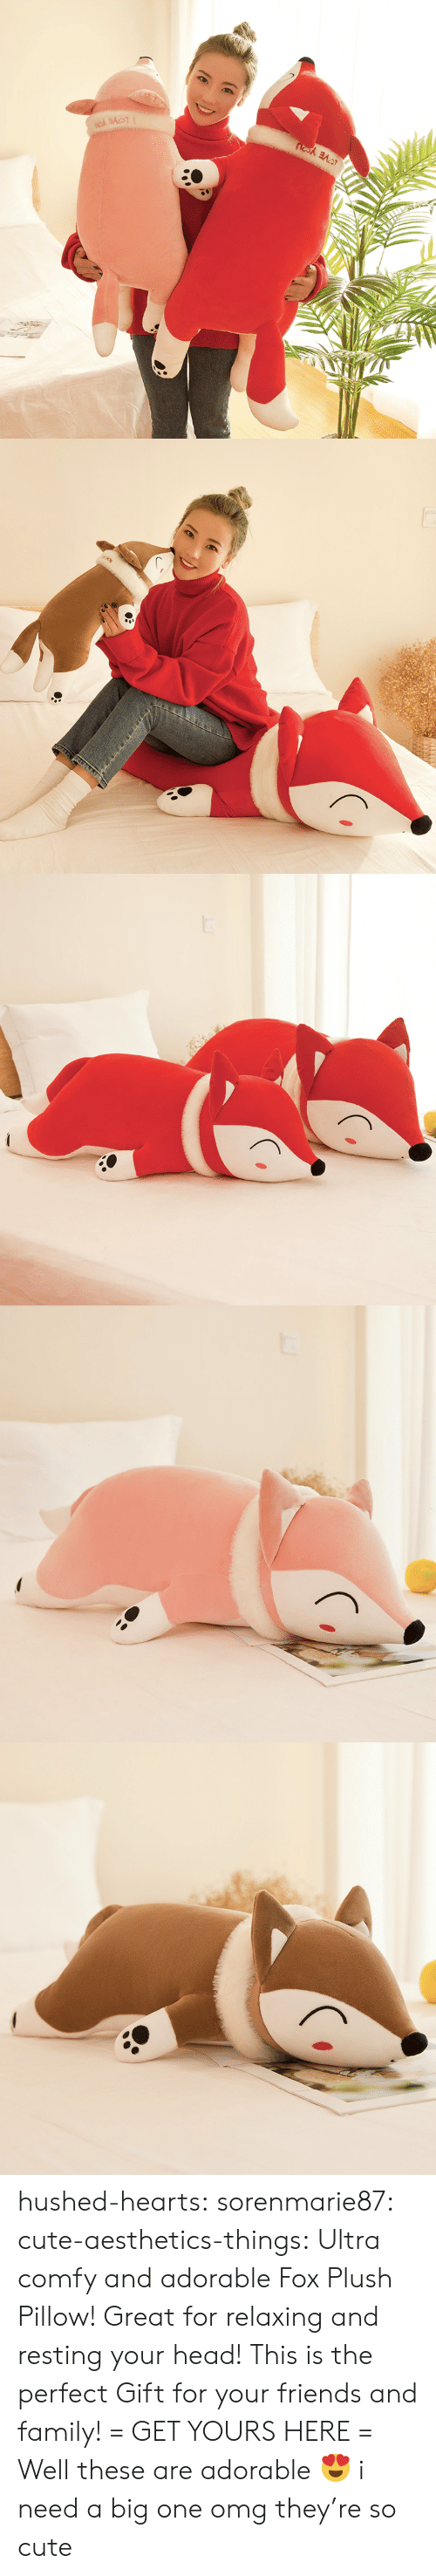 Cute, Family, and Friends: hushed-hearts:  sorenmarie87:  cute-aesthetics-things:  Ultra comfy and adorable Fox Plush Pillow! Great for relaxing and resting your head! This is the perfect Gift for your friends and family! = GET YOURS HERE =   Well these are adorable 😍  i need a big one omg they're so cute